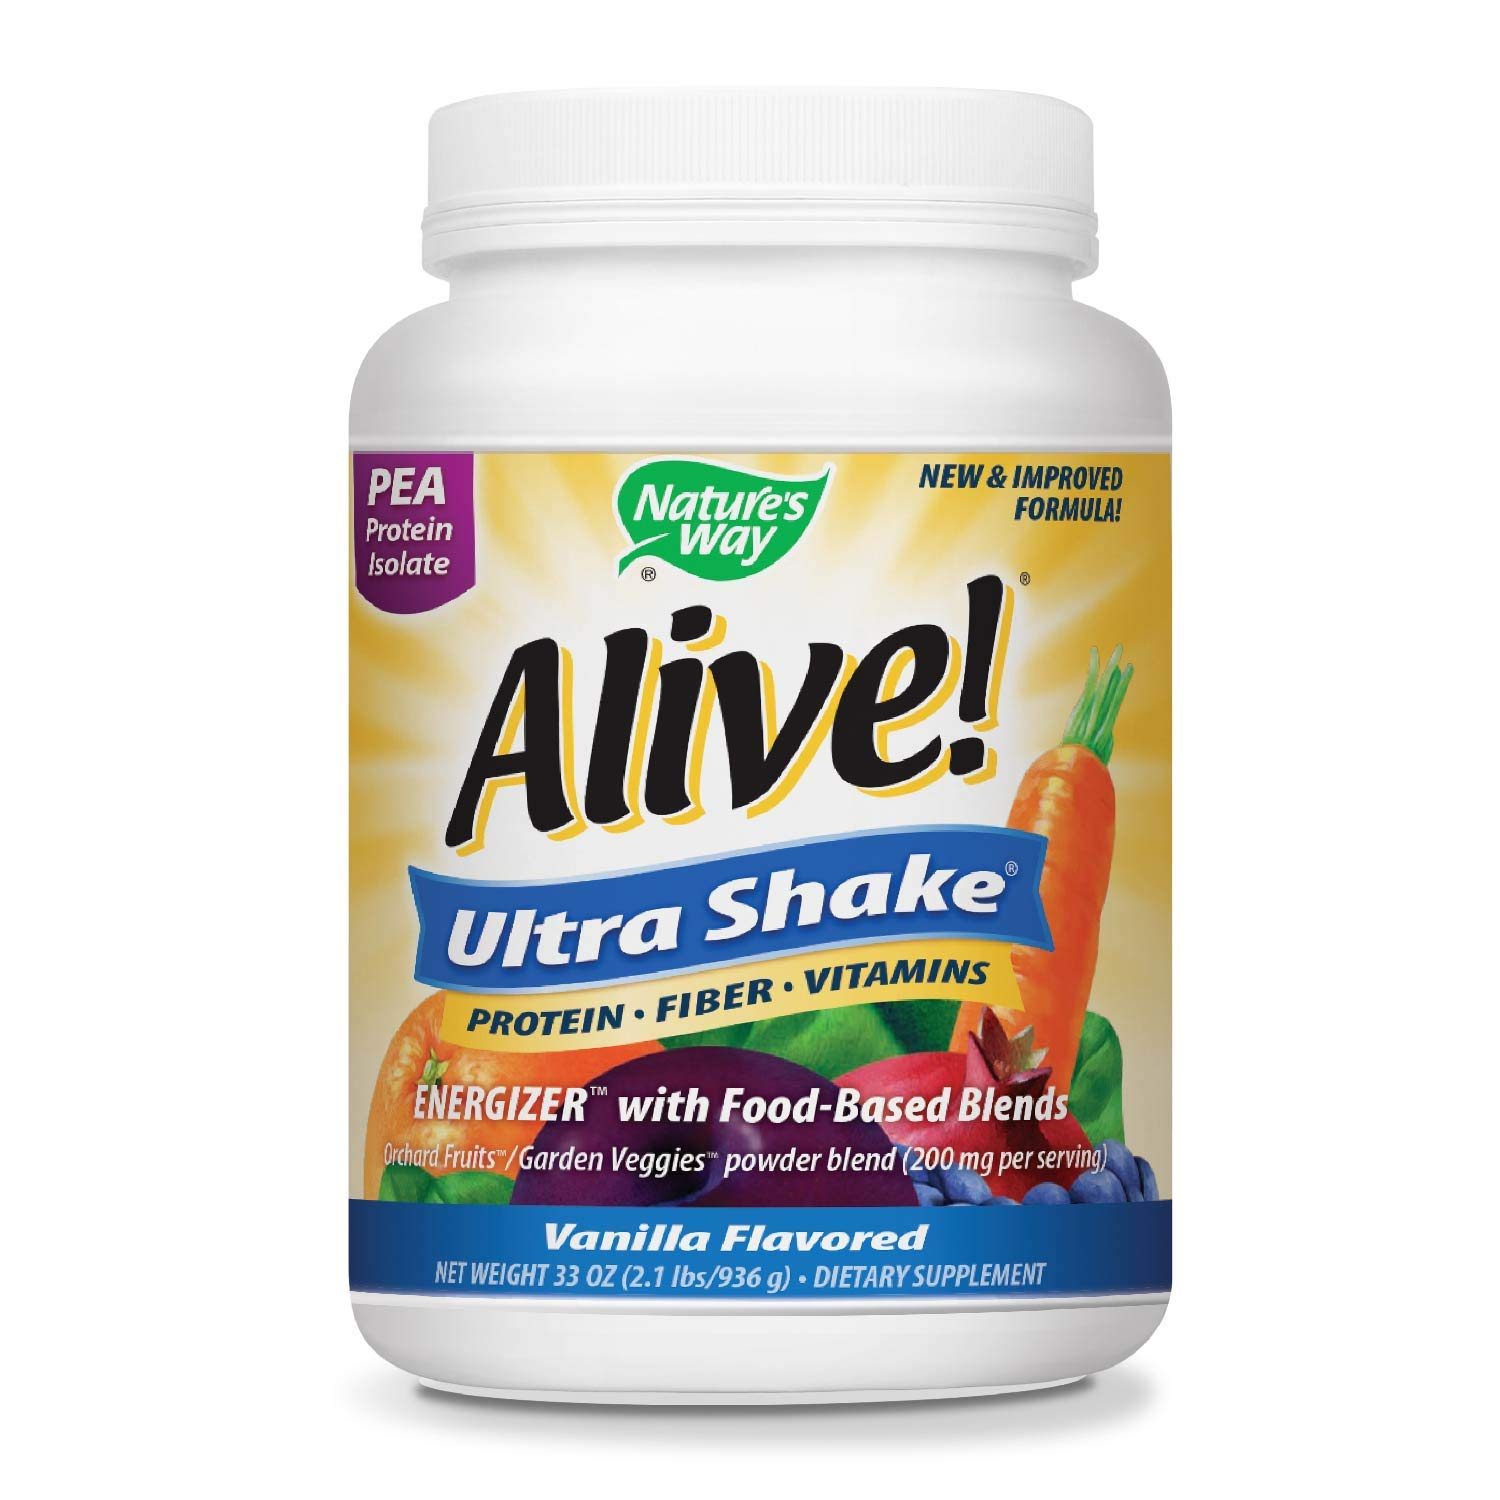 Nature's Way Alive! Pea Protein Shake, Includes Vitamins, Fiber and Food-Based Blends (1,150mg per serving), Vanilla Flavor, 26 Servings by Nature's Way